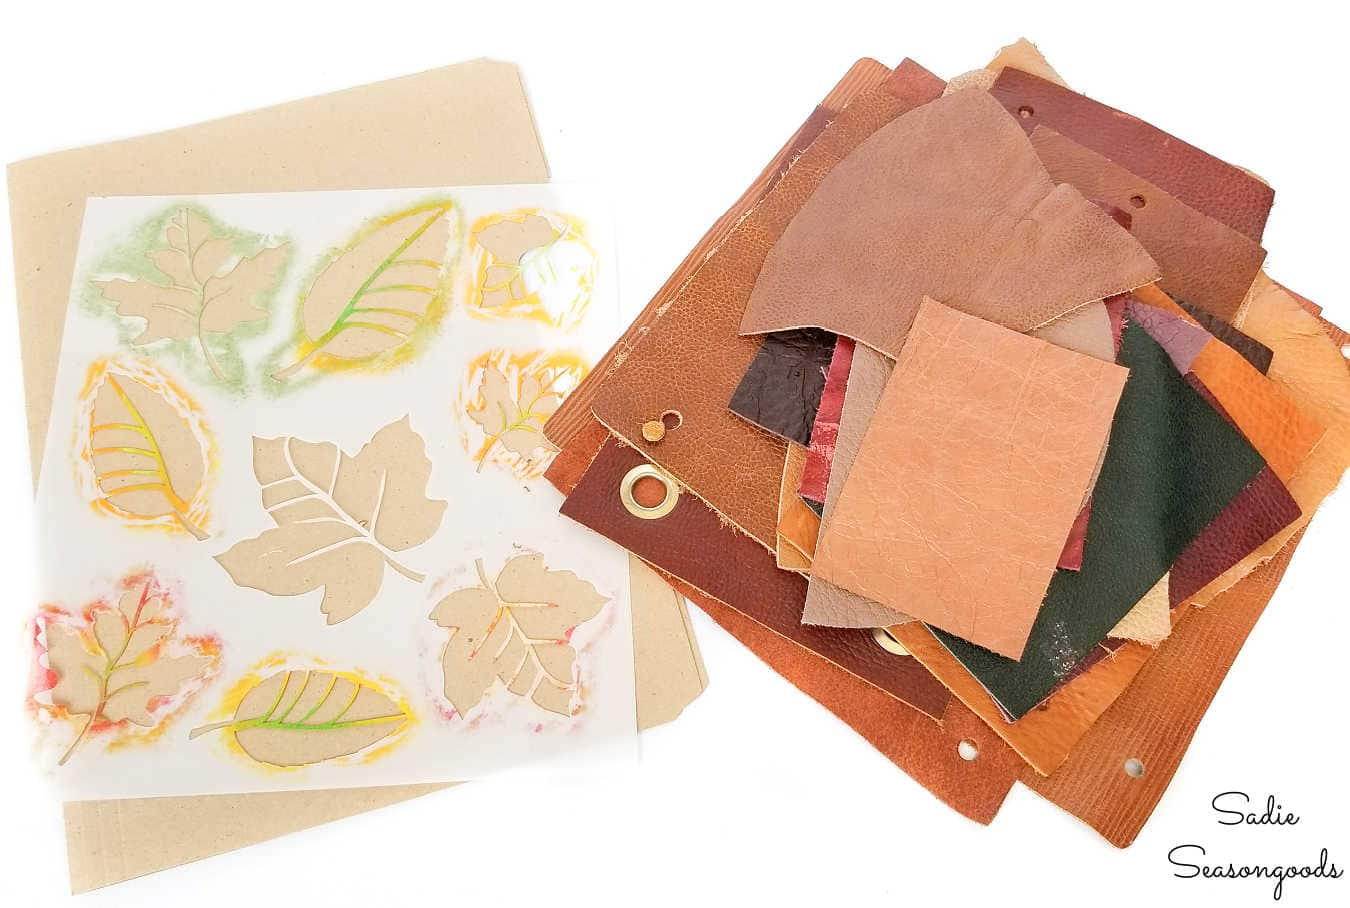 making leaf patterns from a stencil